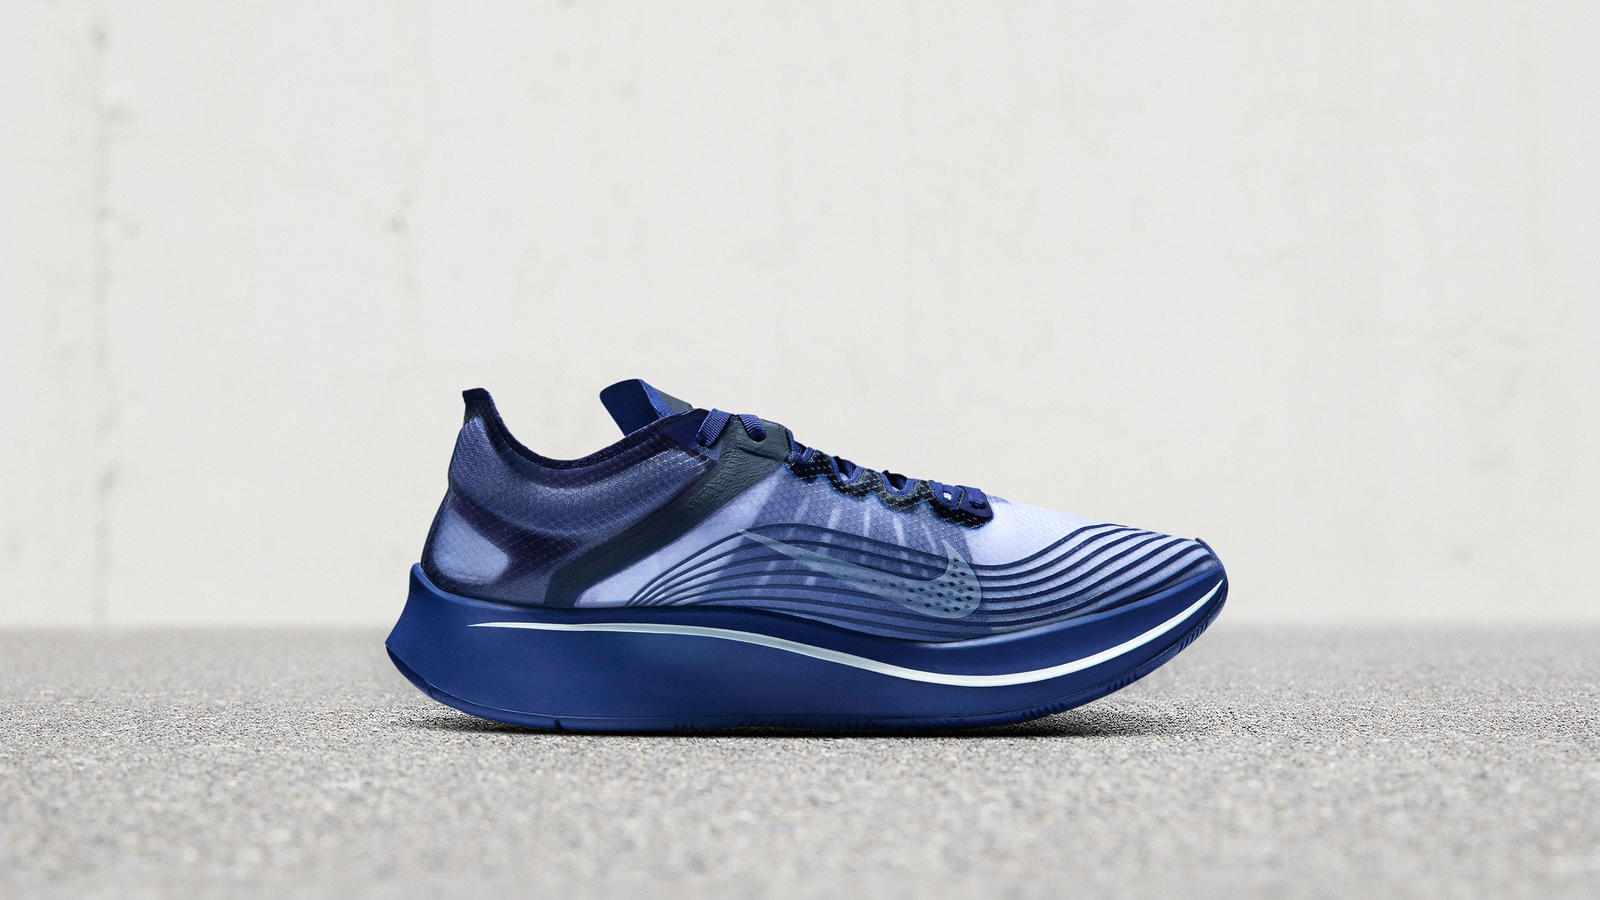 How to Get the Nike Zoom Fly SP Gyakusou 0